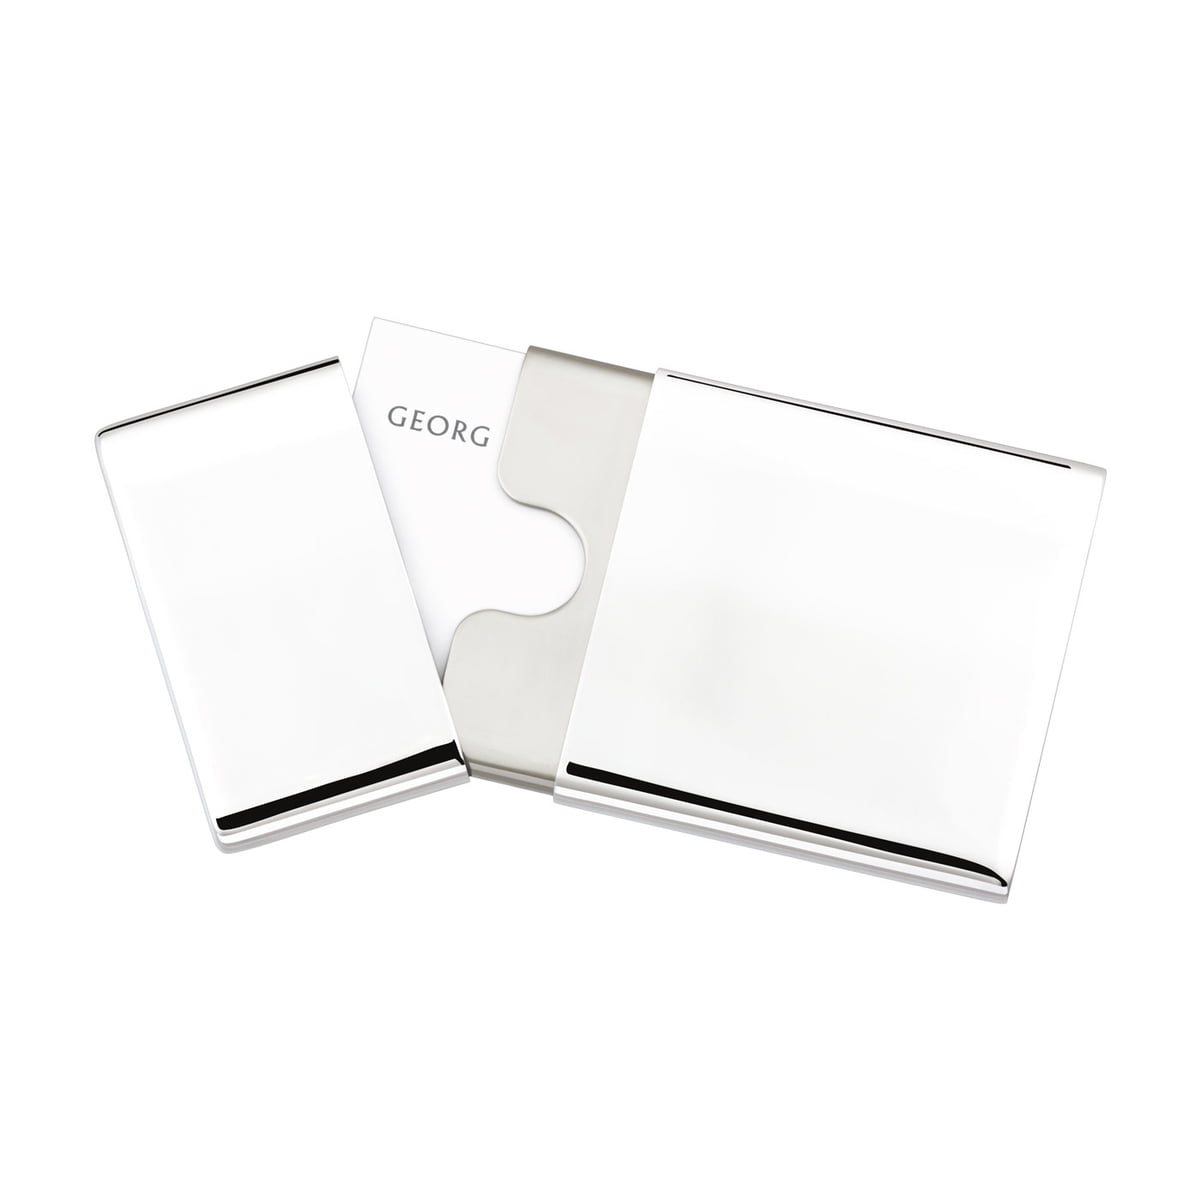 Georg Jensen Business Cards Holder To Go